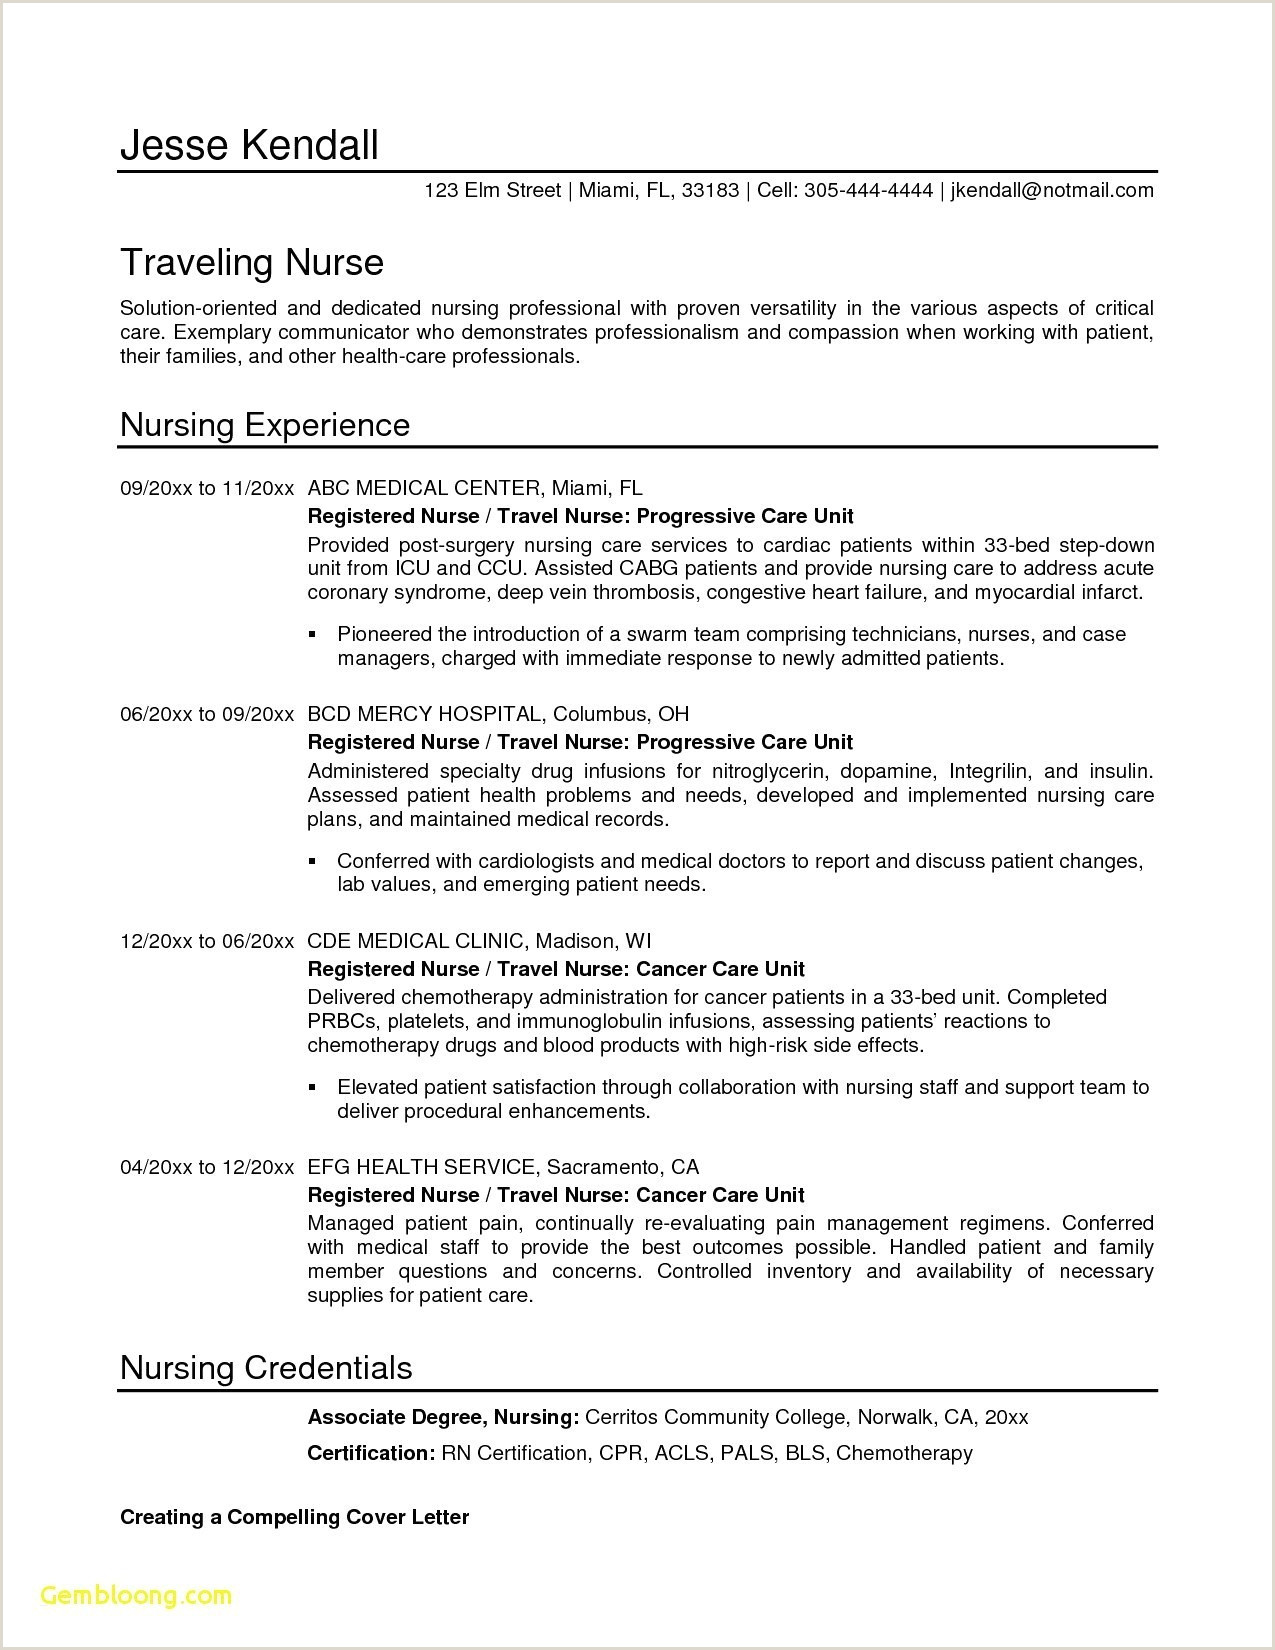 Surgical Technologist Resumes Sleep Technician Resume New Pdf the Scoring Arousal In